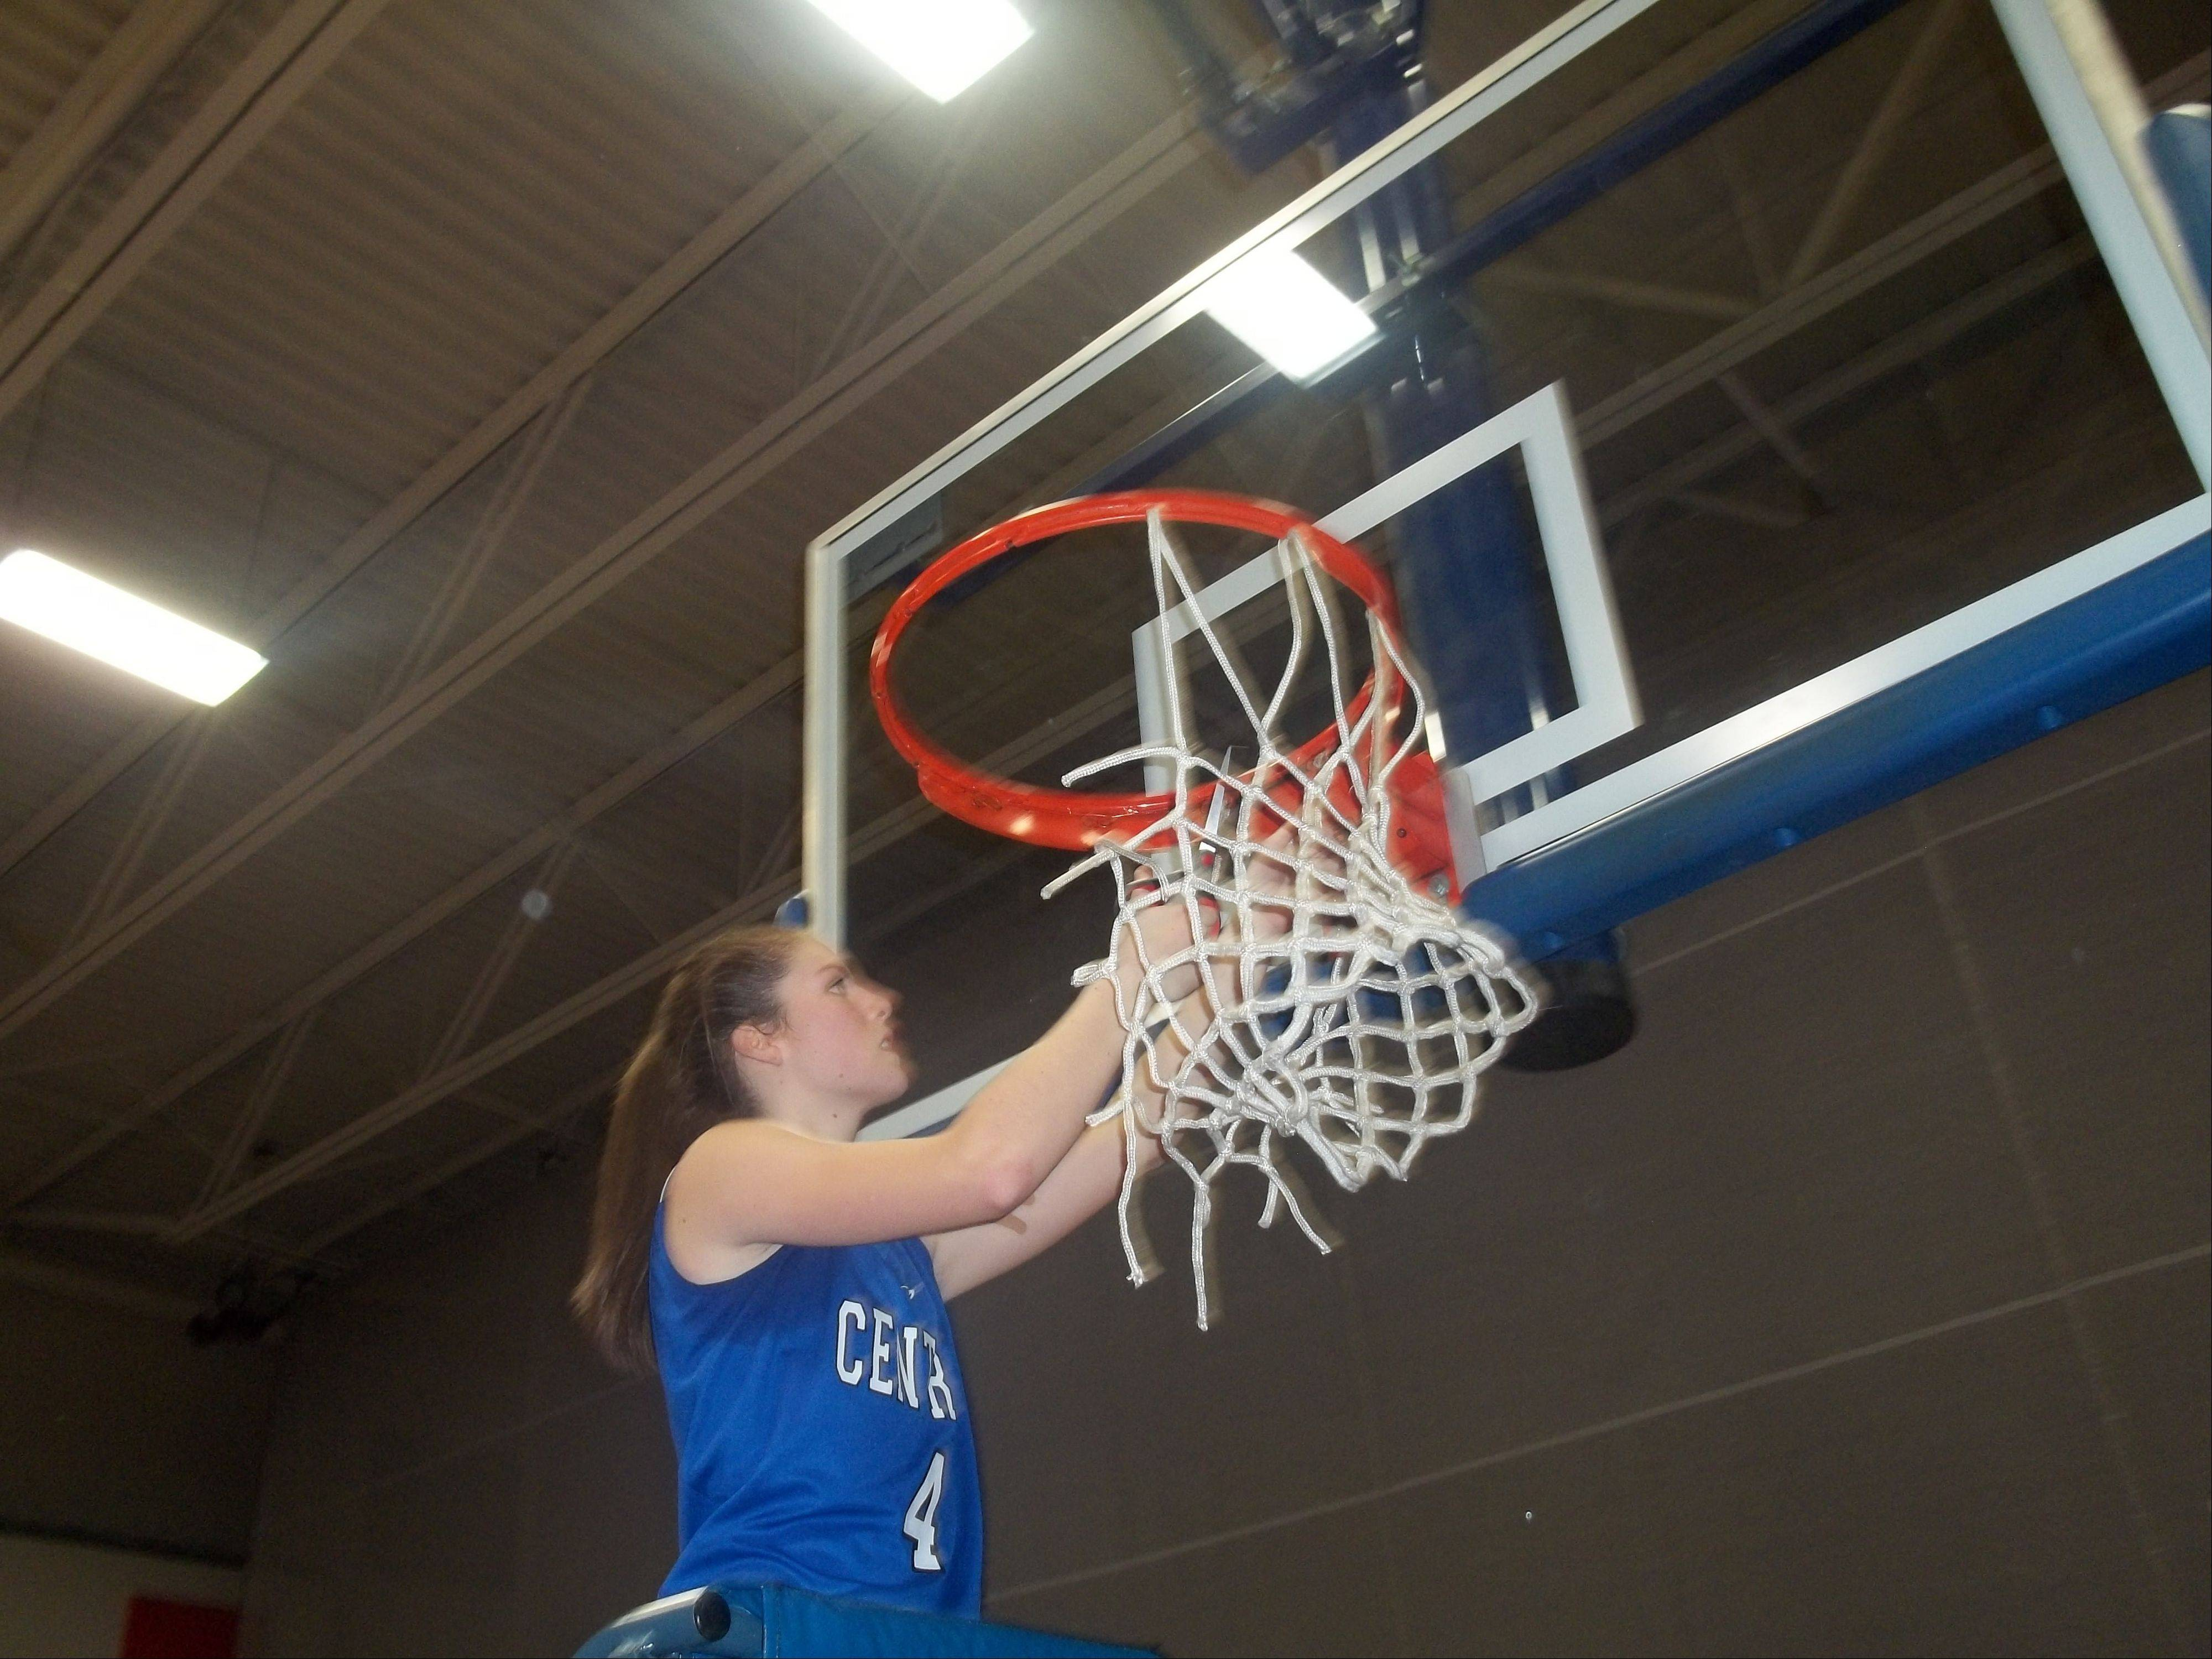 Burlington Central freshman Kayla Ross cuts a piece of the net Thursday after the Rockets' 49-26 win over Sterling in the Class 3A Genoa-Kingston sectional championship game.